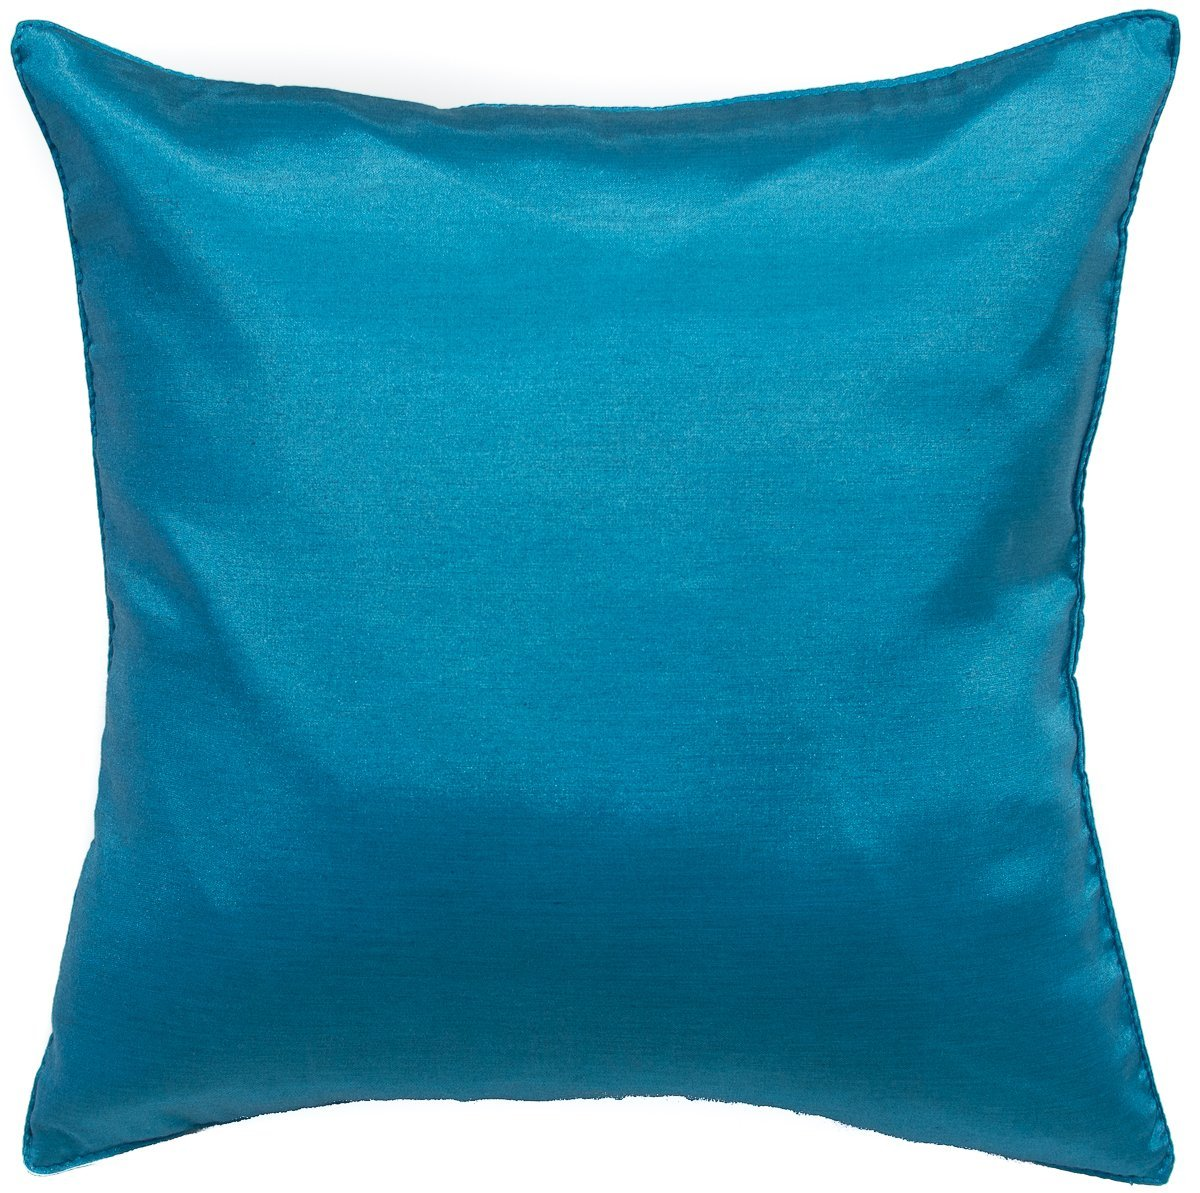 Avarada Solid Decorative Throw Pillow Covers Case Cushion Cover 16x16 inch for Sofa Couch Chair Bed Back Zipper Insert Not Included Handmade Quality Blue by Avarada